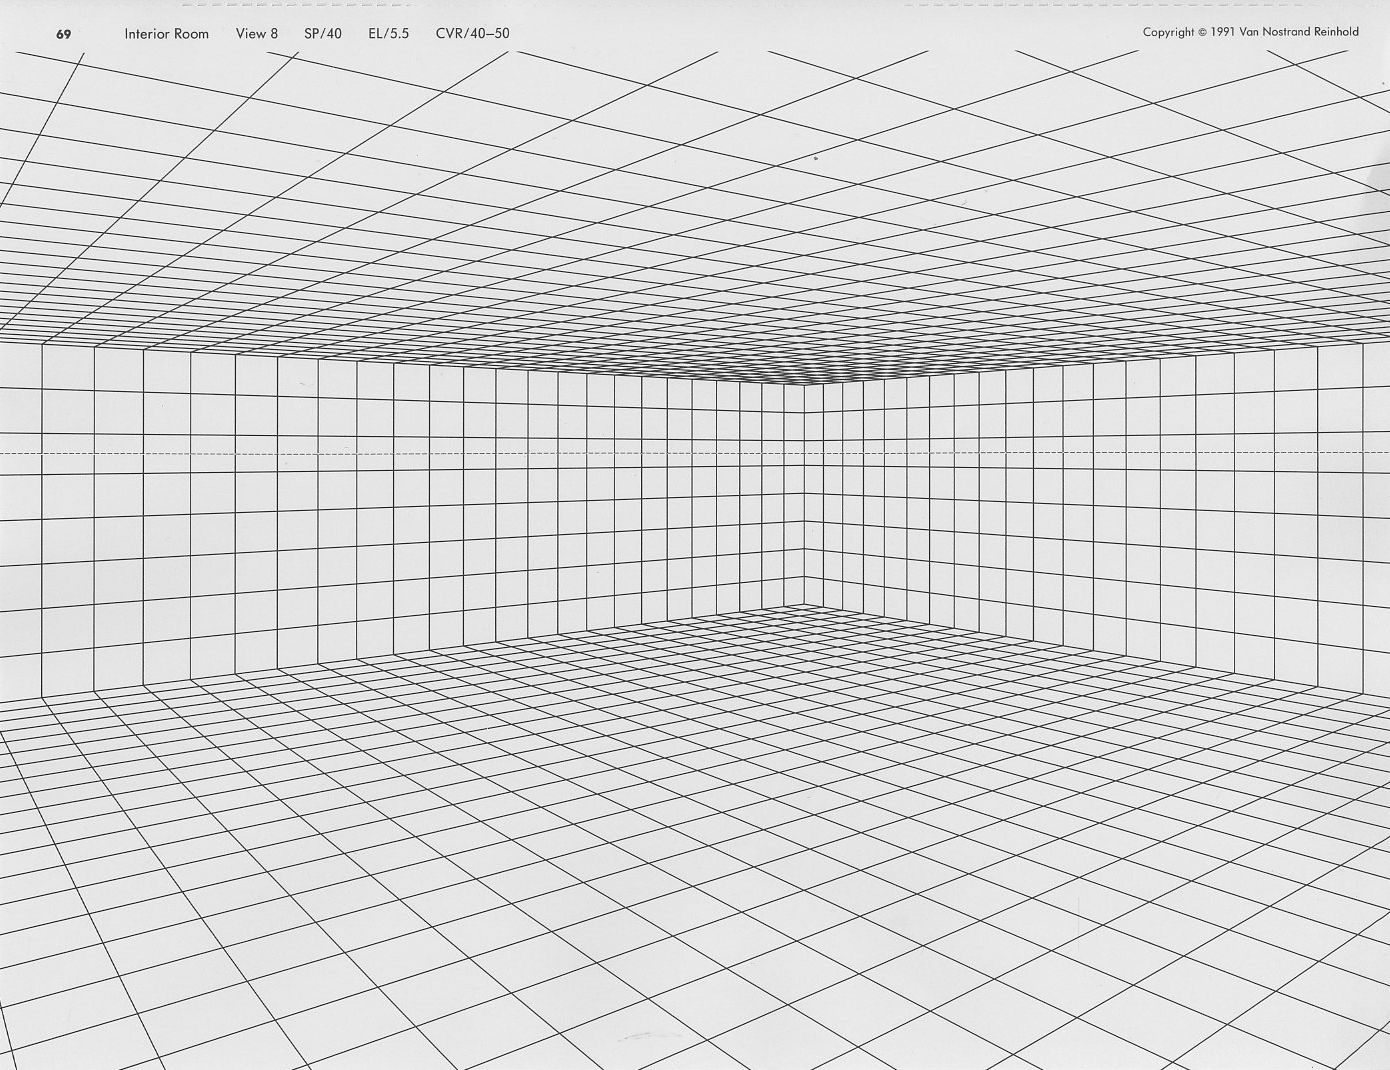 Perspective Grid Meant For Interiors But Use As Needed